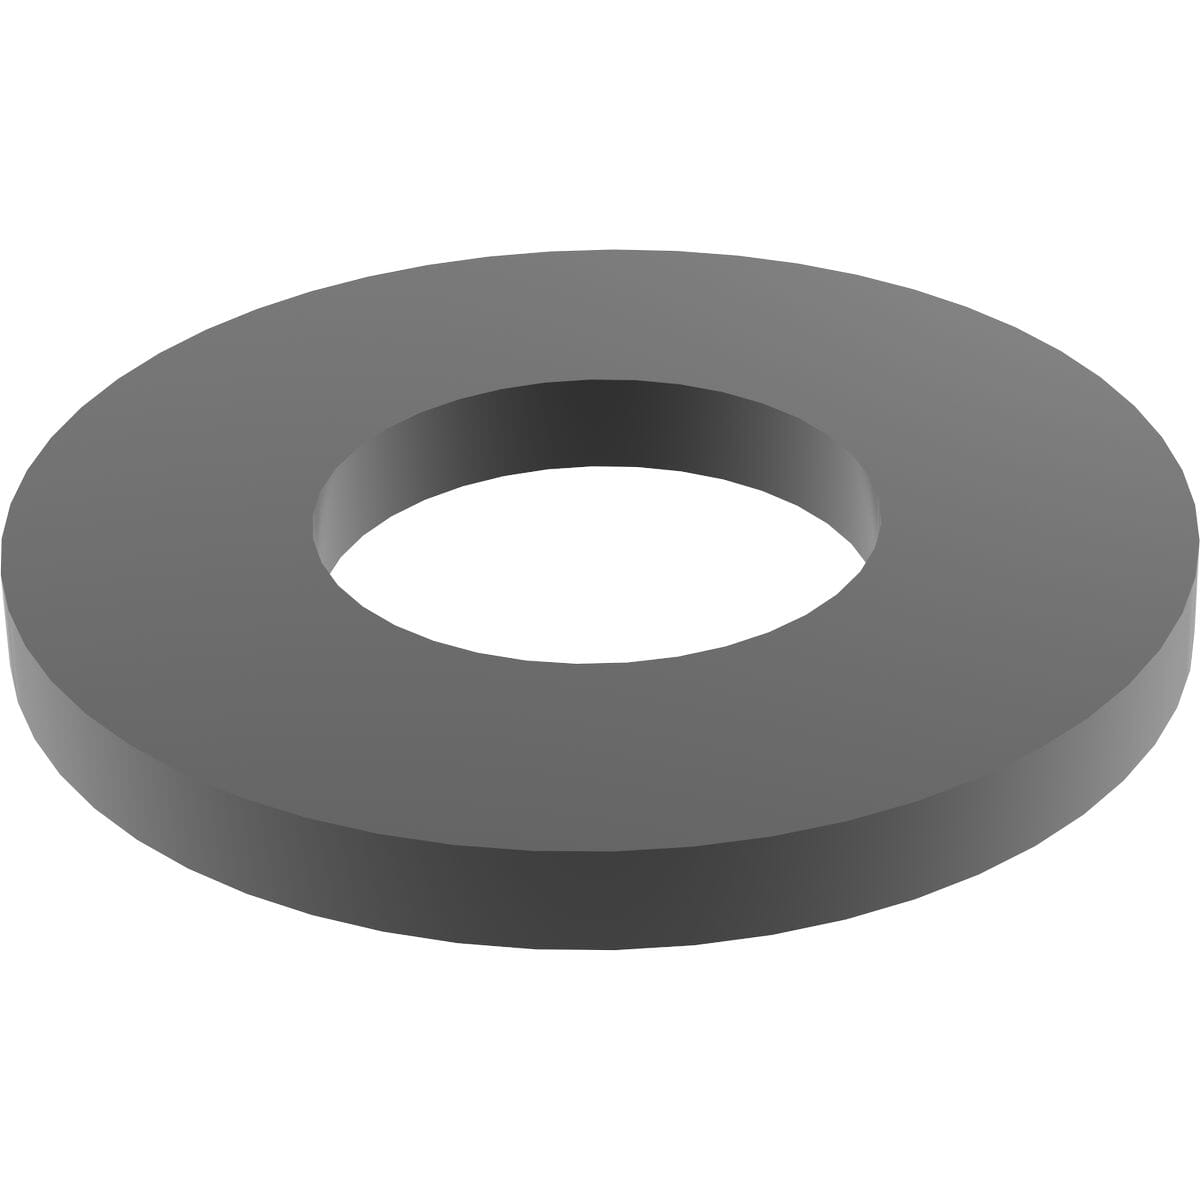 M8 Large Series 200HV Flat Washers (ISO 7093-1) - Black Marine Stainless Steel (A4)